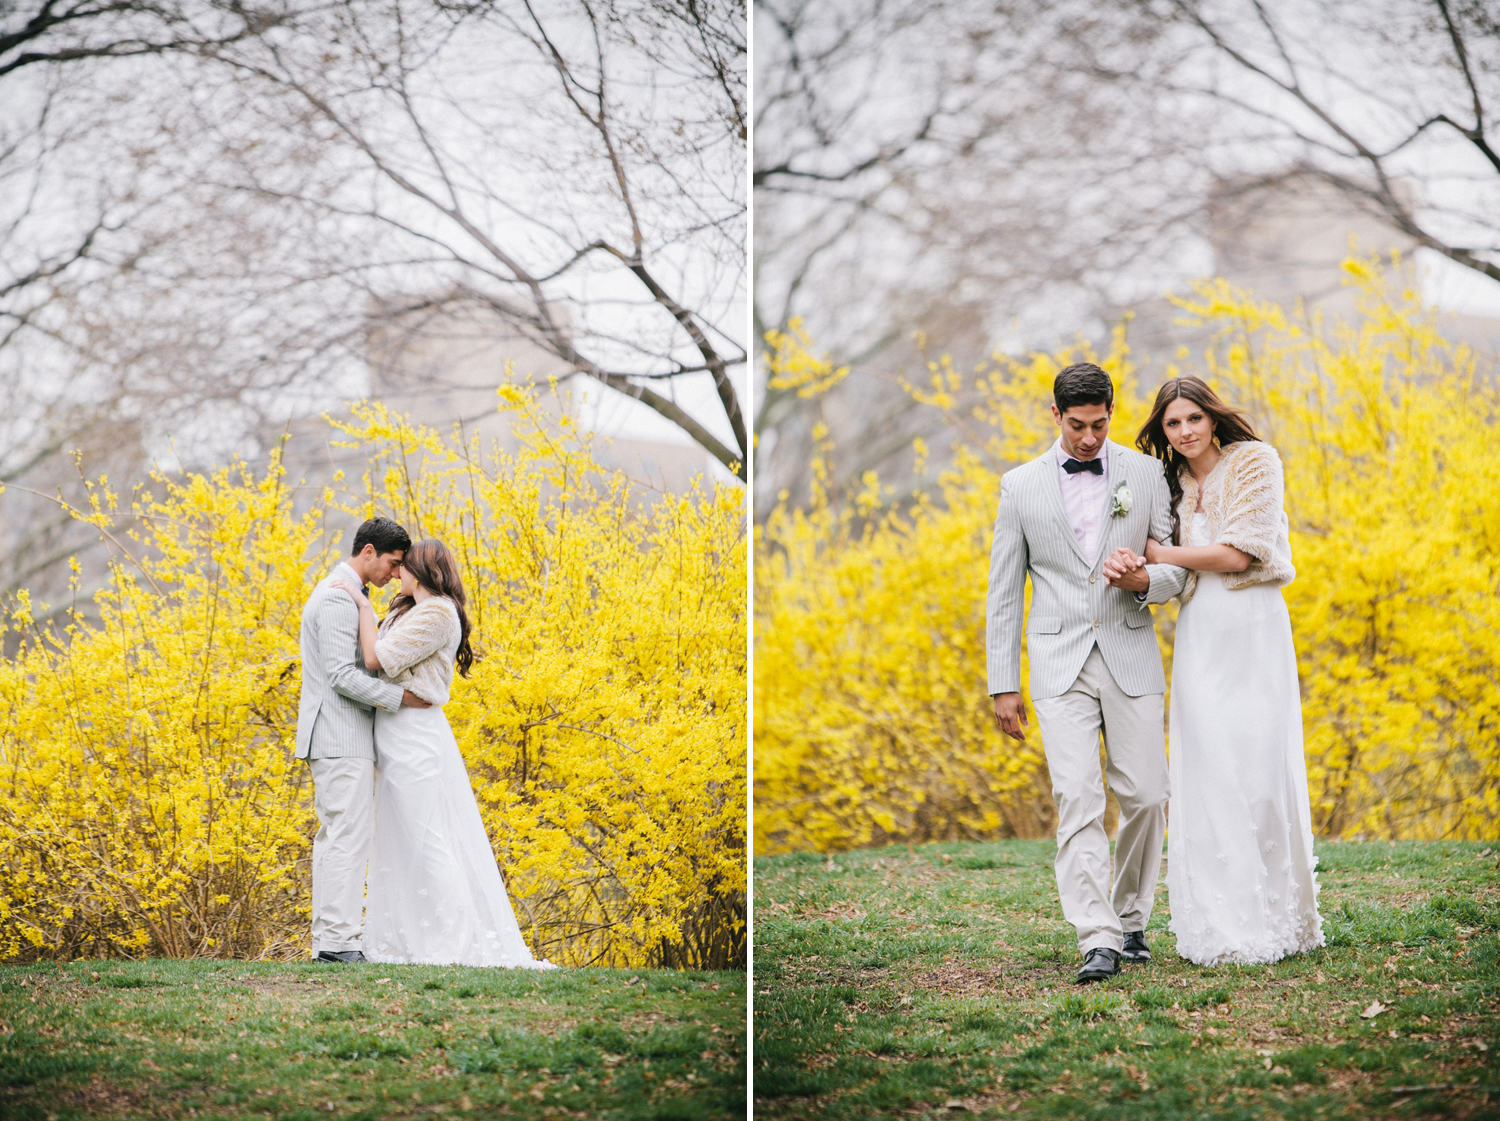 michael-rousseau-photography-new-york-city-wedding-central-park015.jpg